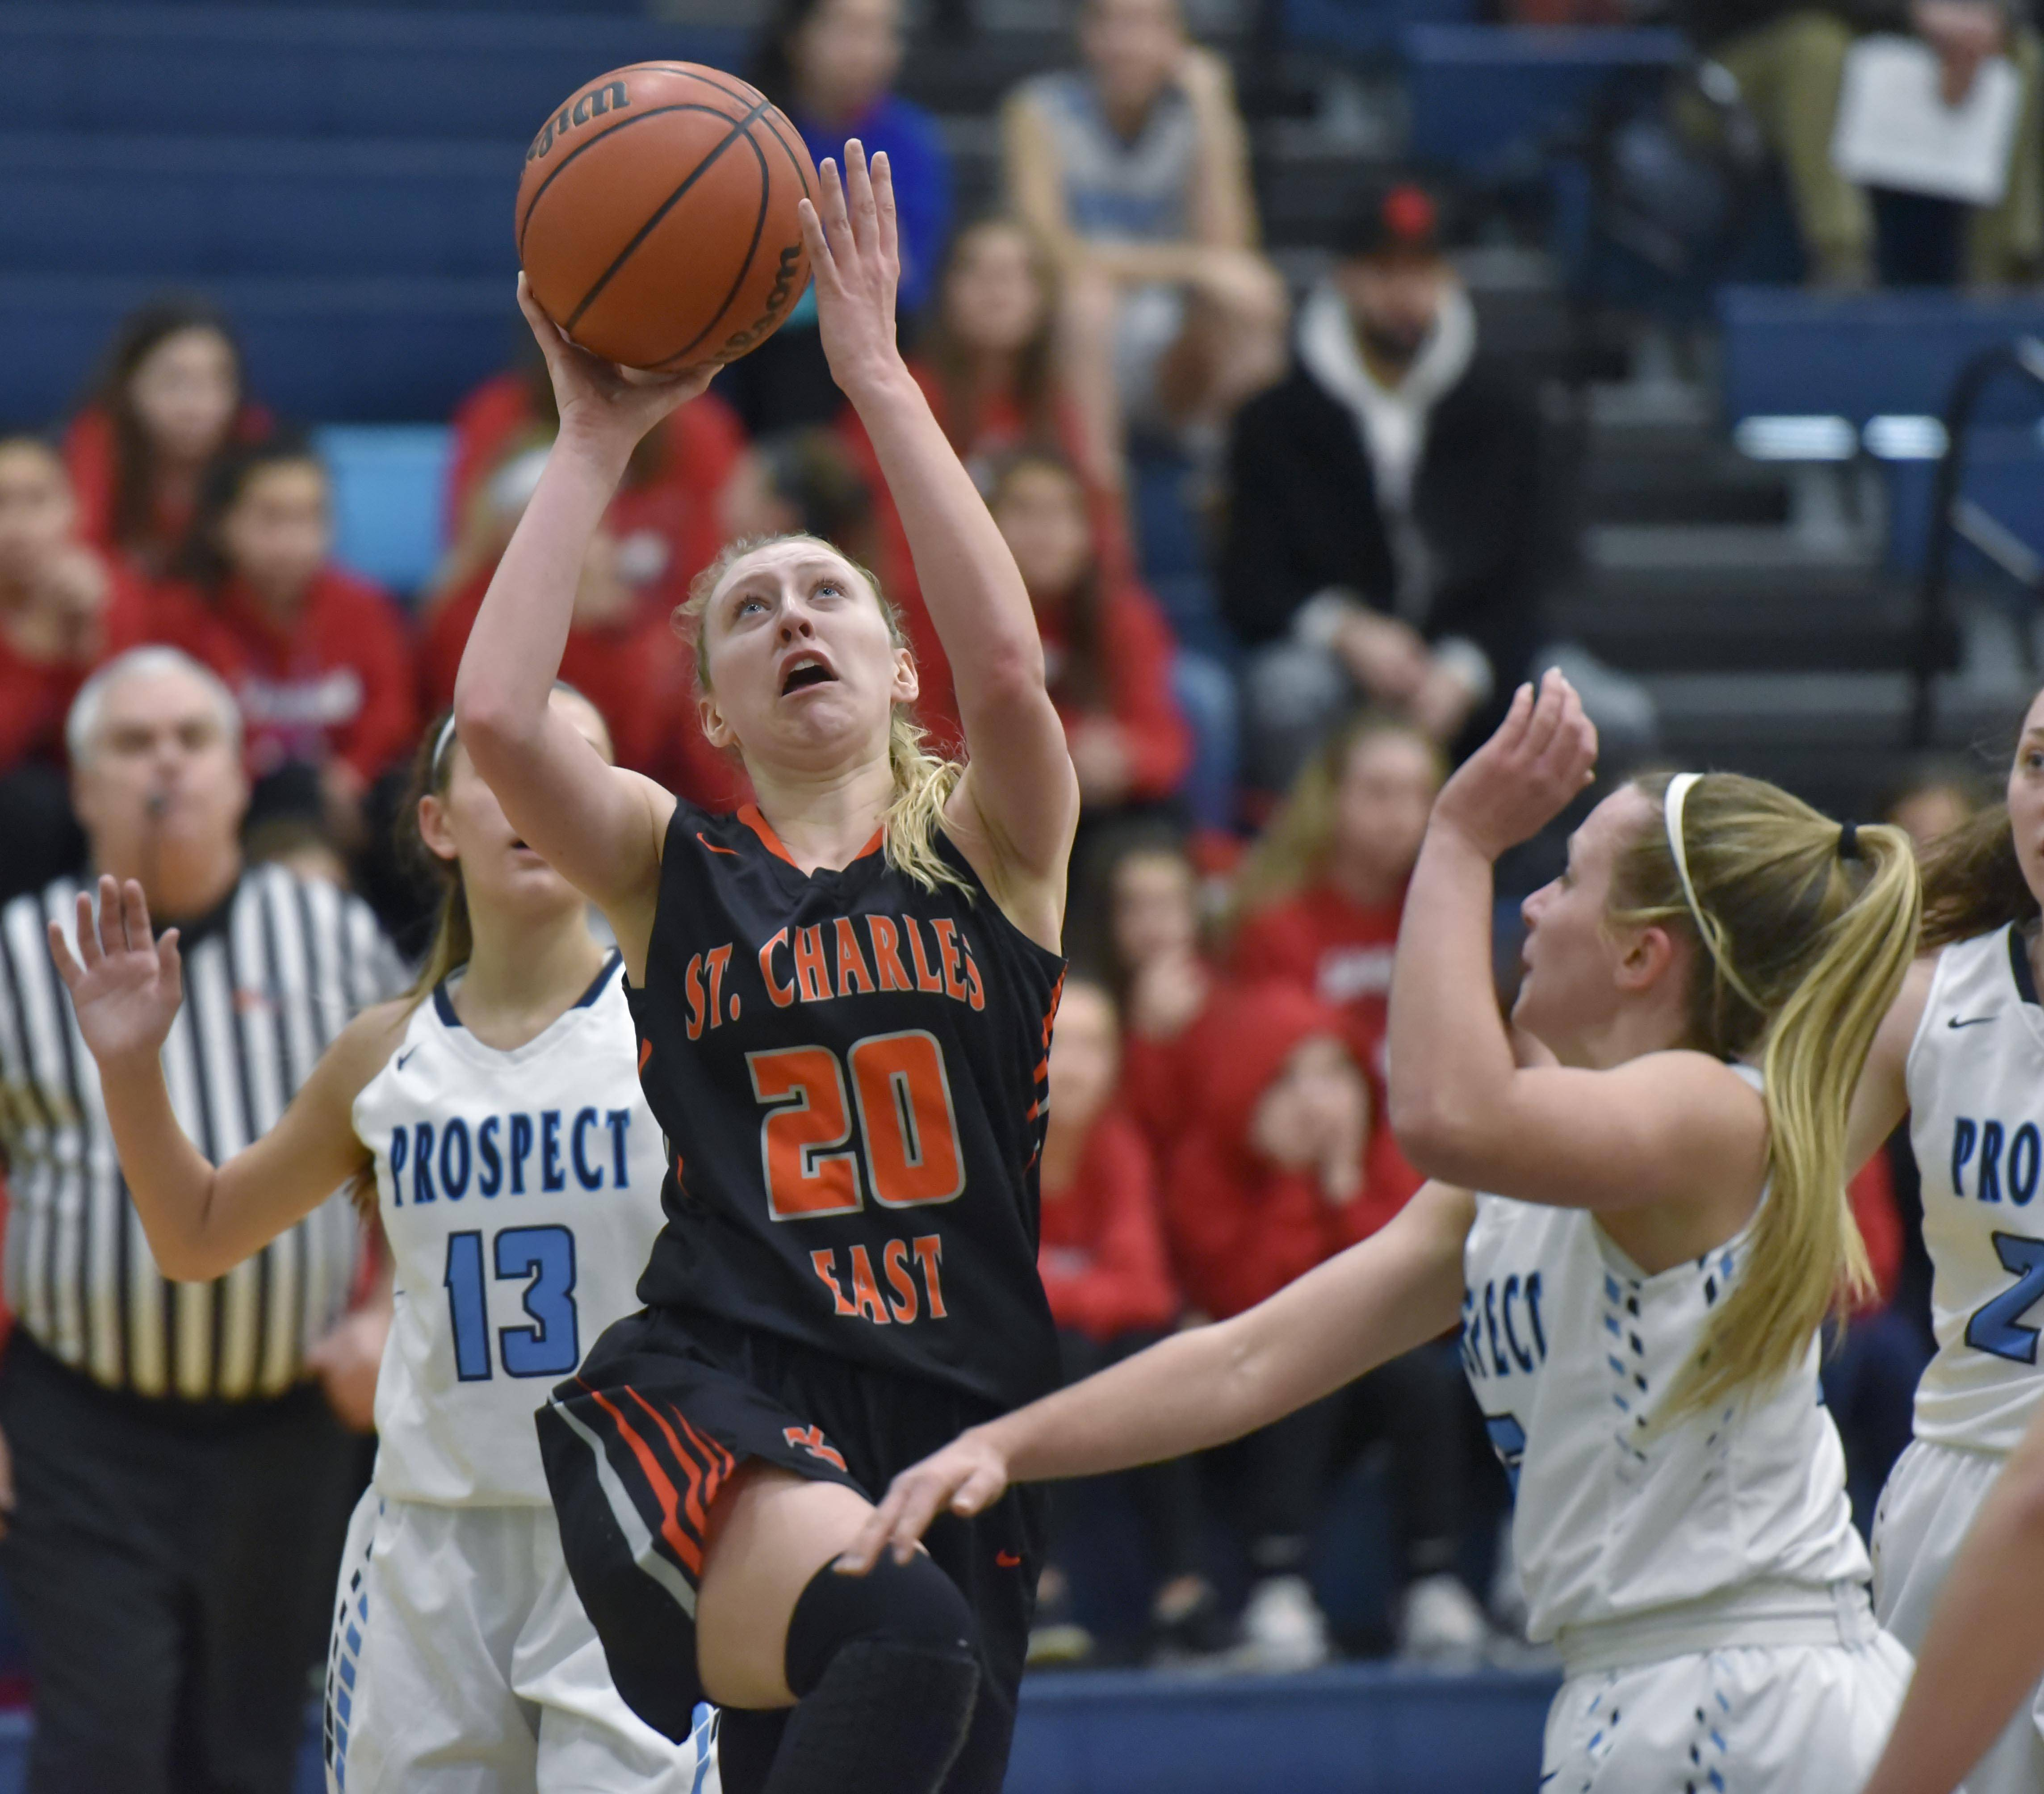 St. Charles East's Alexis Kiefer puts up a shot against Prospect's Helen Siavelis Wednesday in a girls basketball game in Mount Prospect.